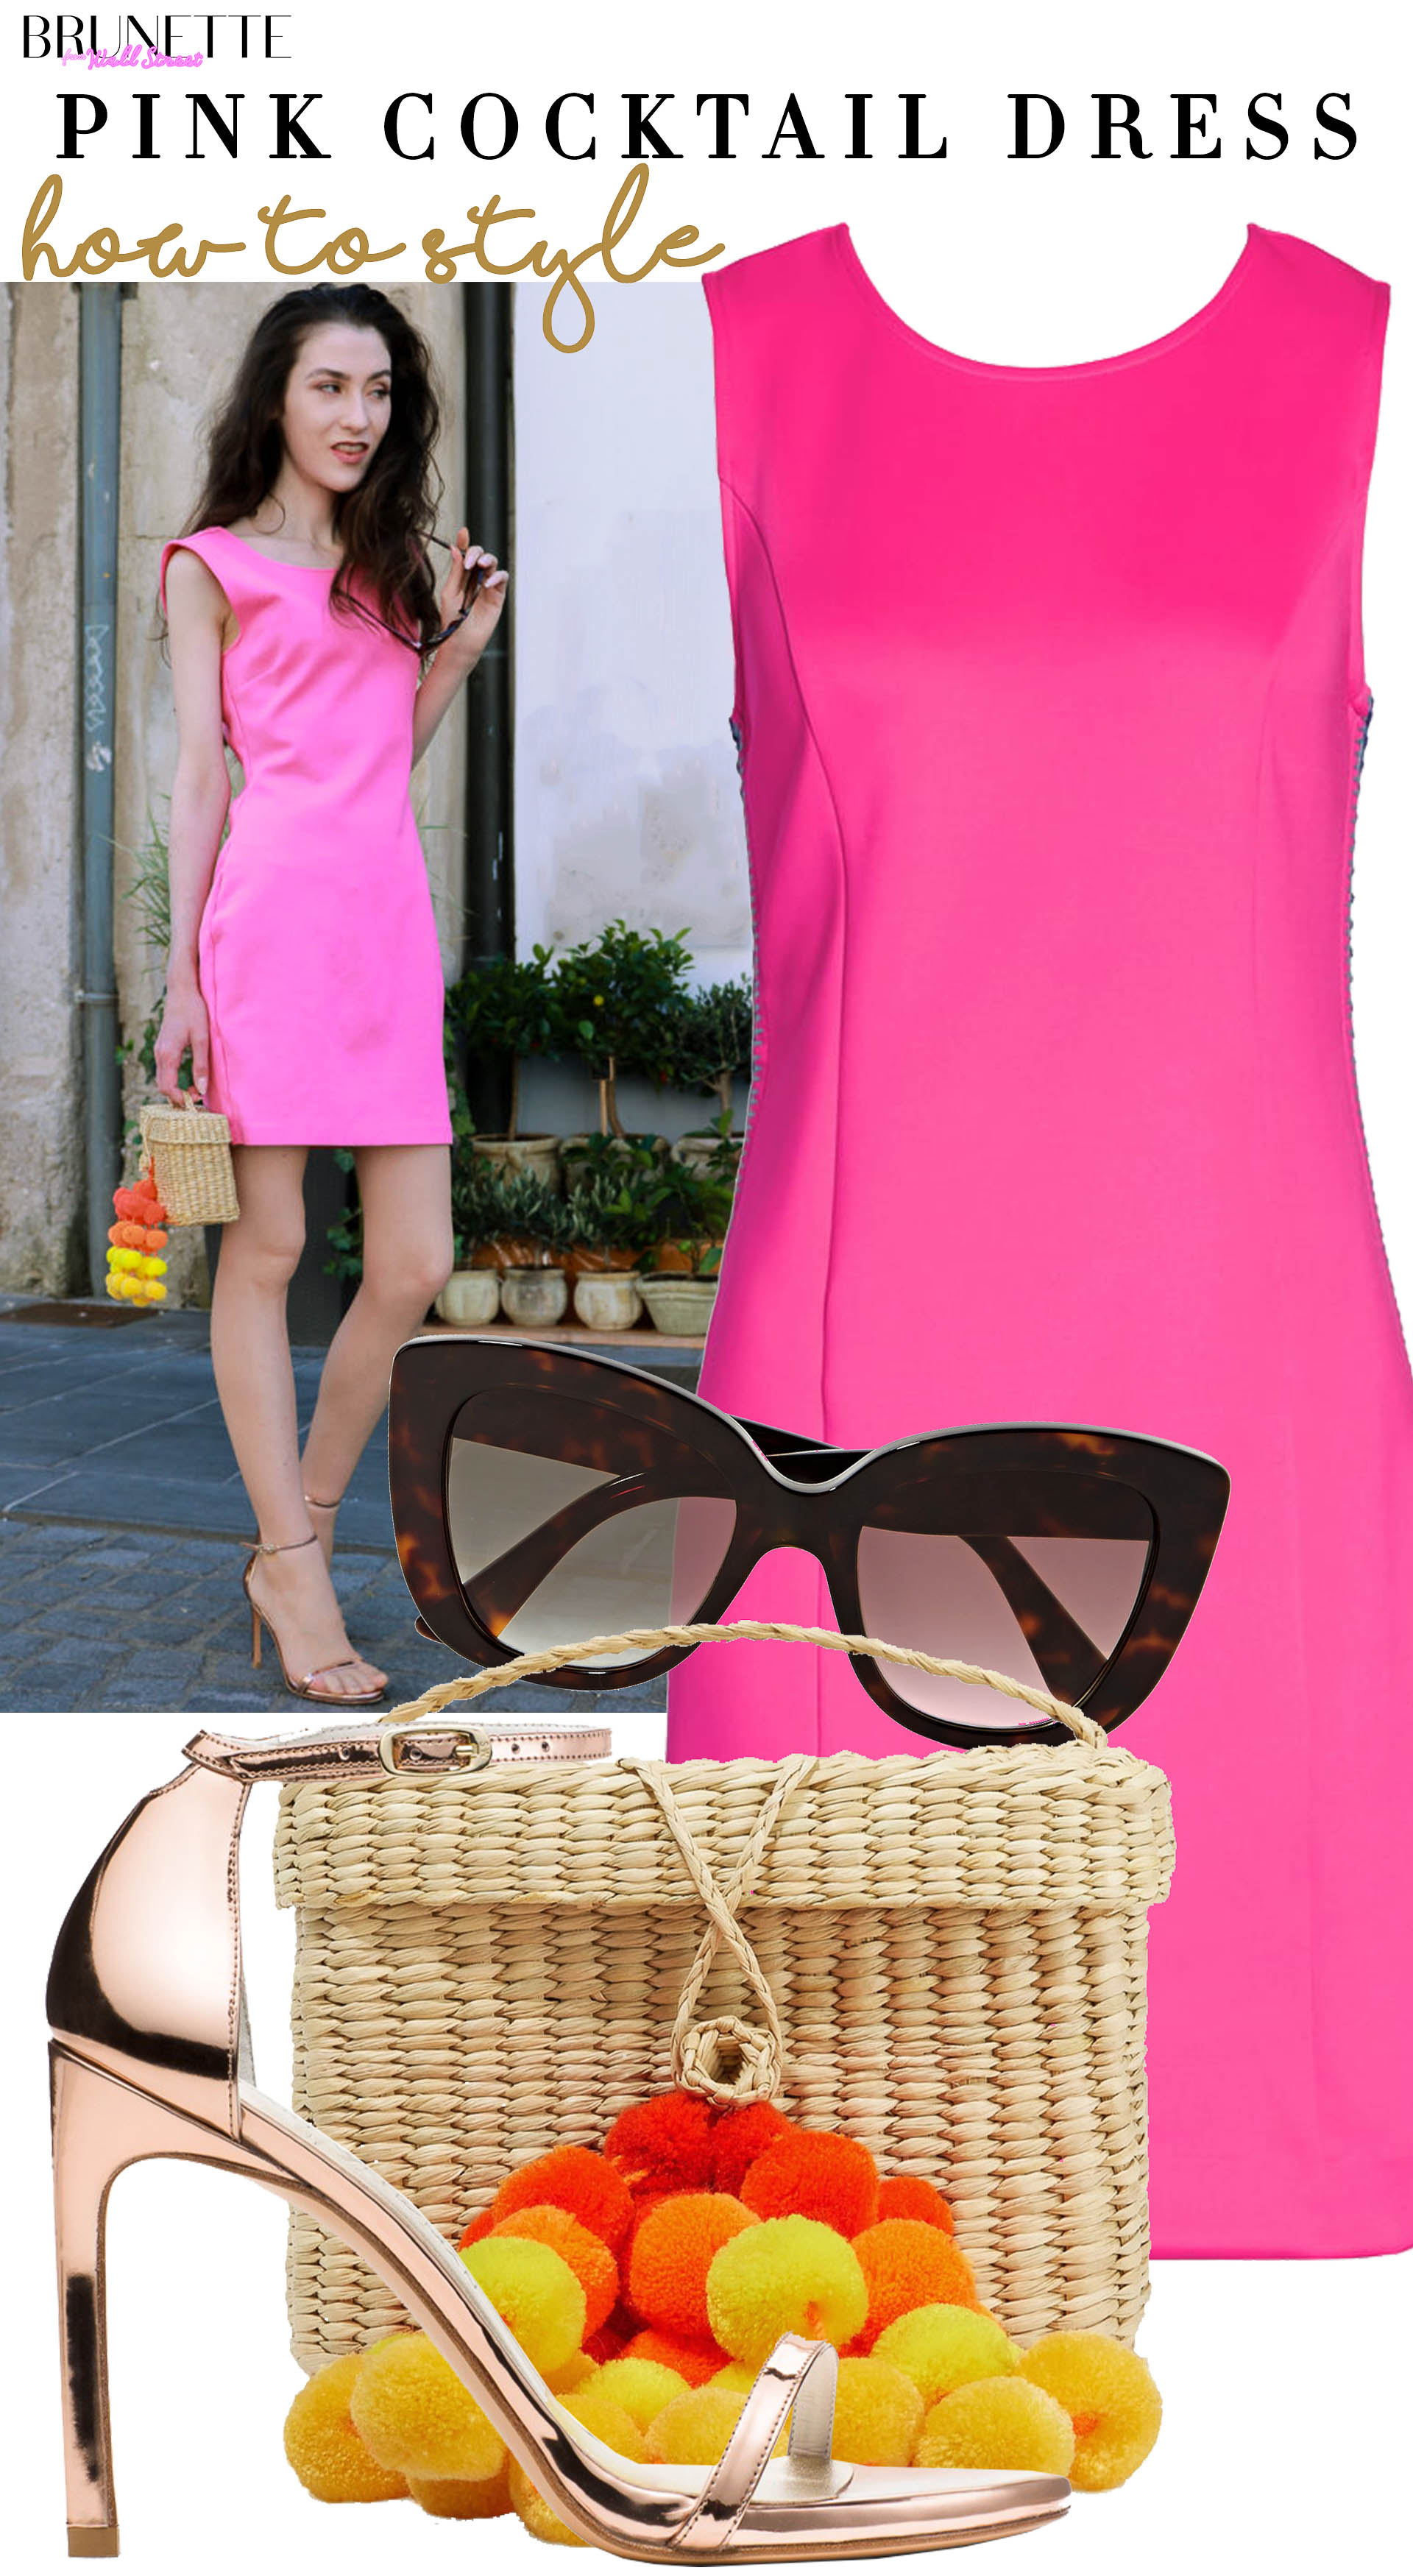 Brunette from Wall Street how to style Barbie pink bodycon dress Stuart Weitzman nudist sing sandals Nannacay bag Gucci sunglasses for date with boyfriend in summer